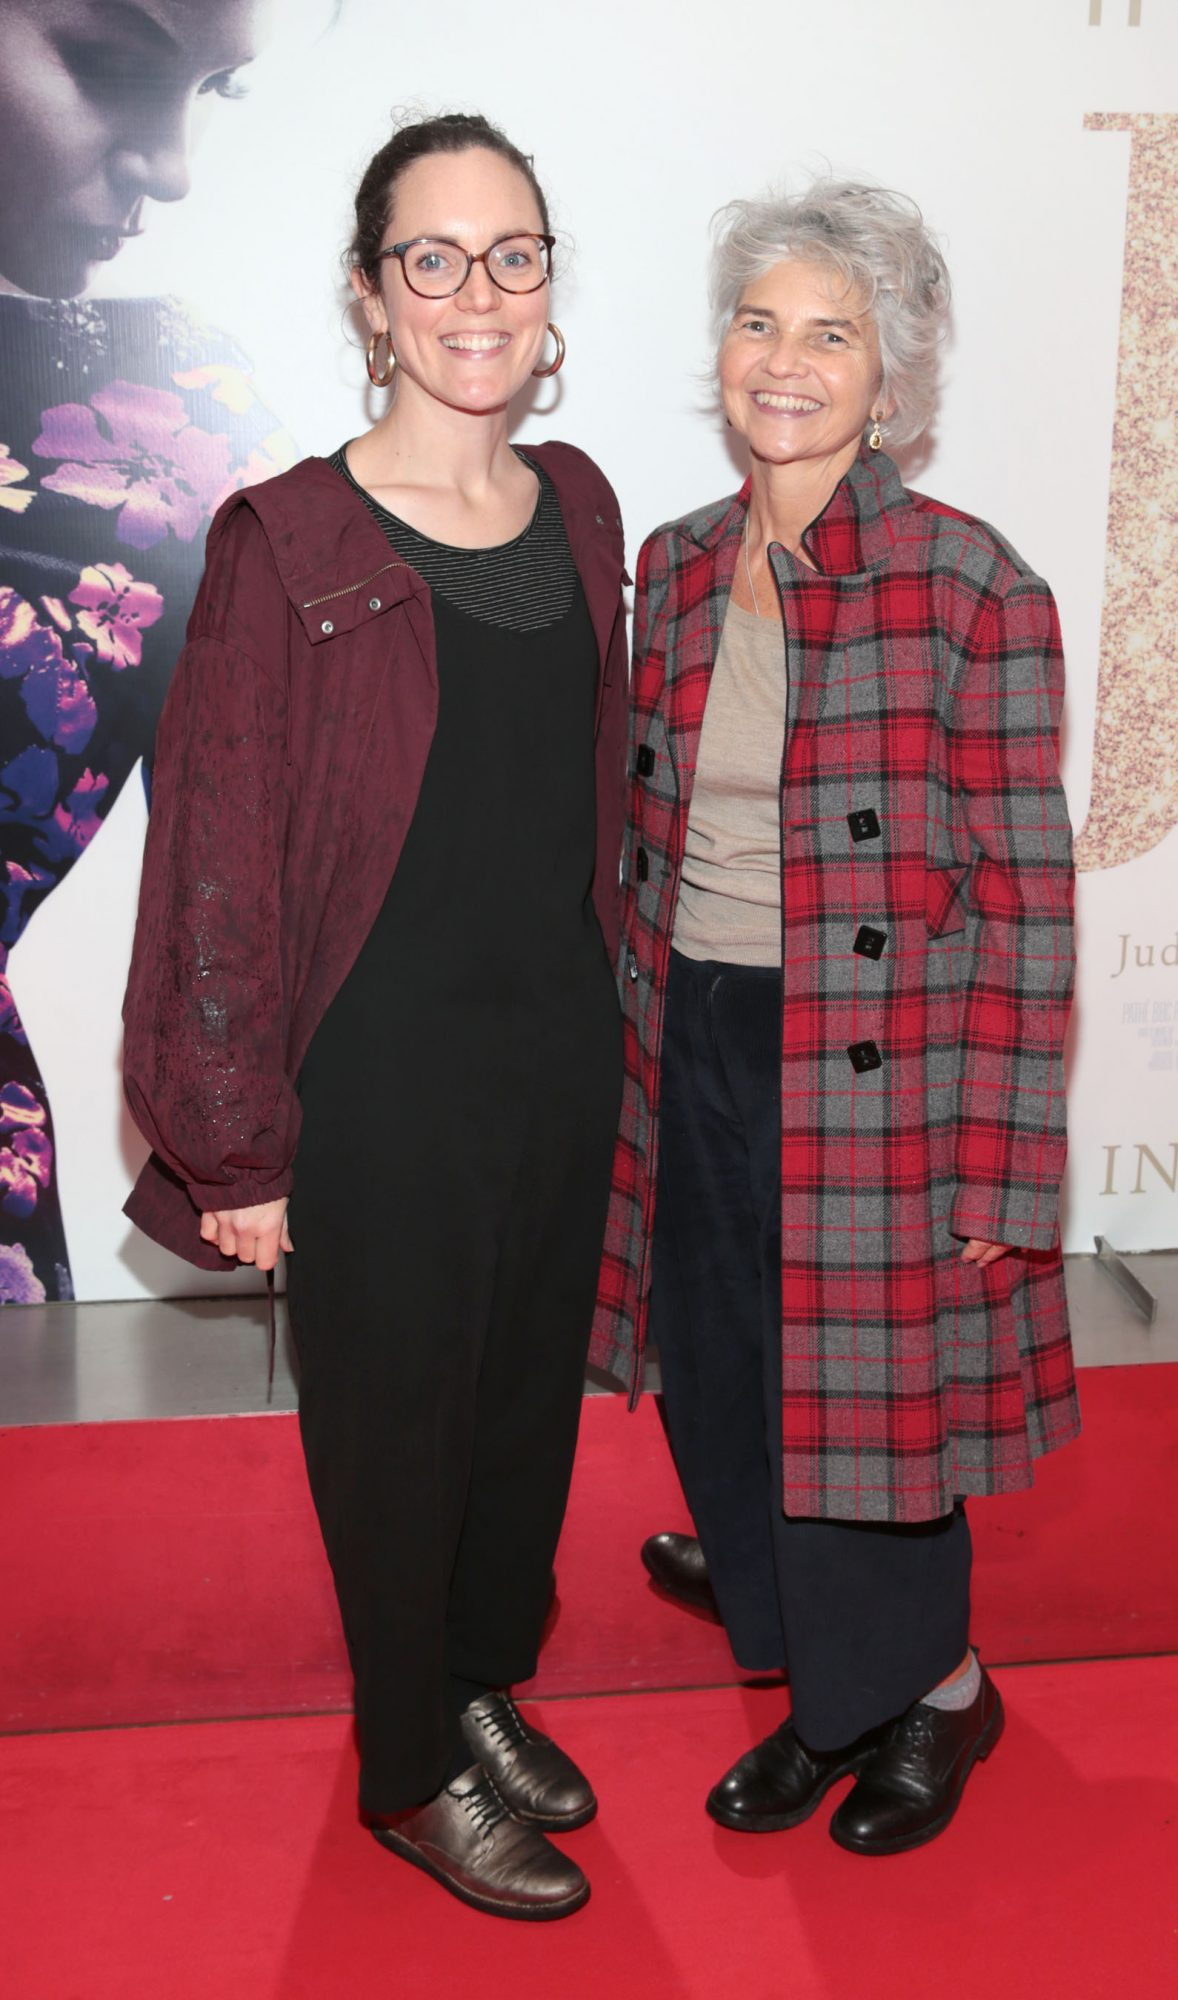 Meadhbh Cooke and Jane Doolan pictured at the Irish Premiere of Judy at the Lighthouse Cinema, Dublin.  Pic: Brian McEvoy.